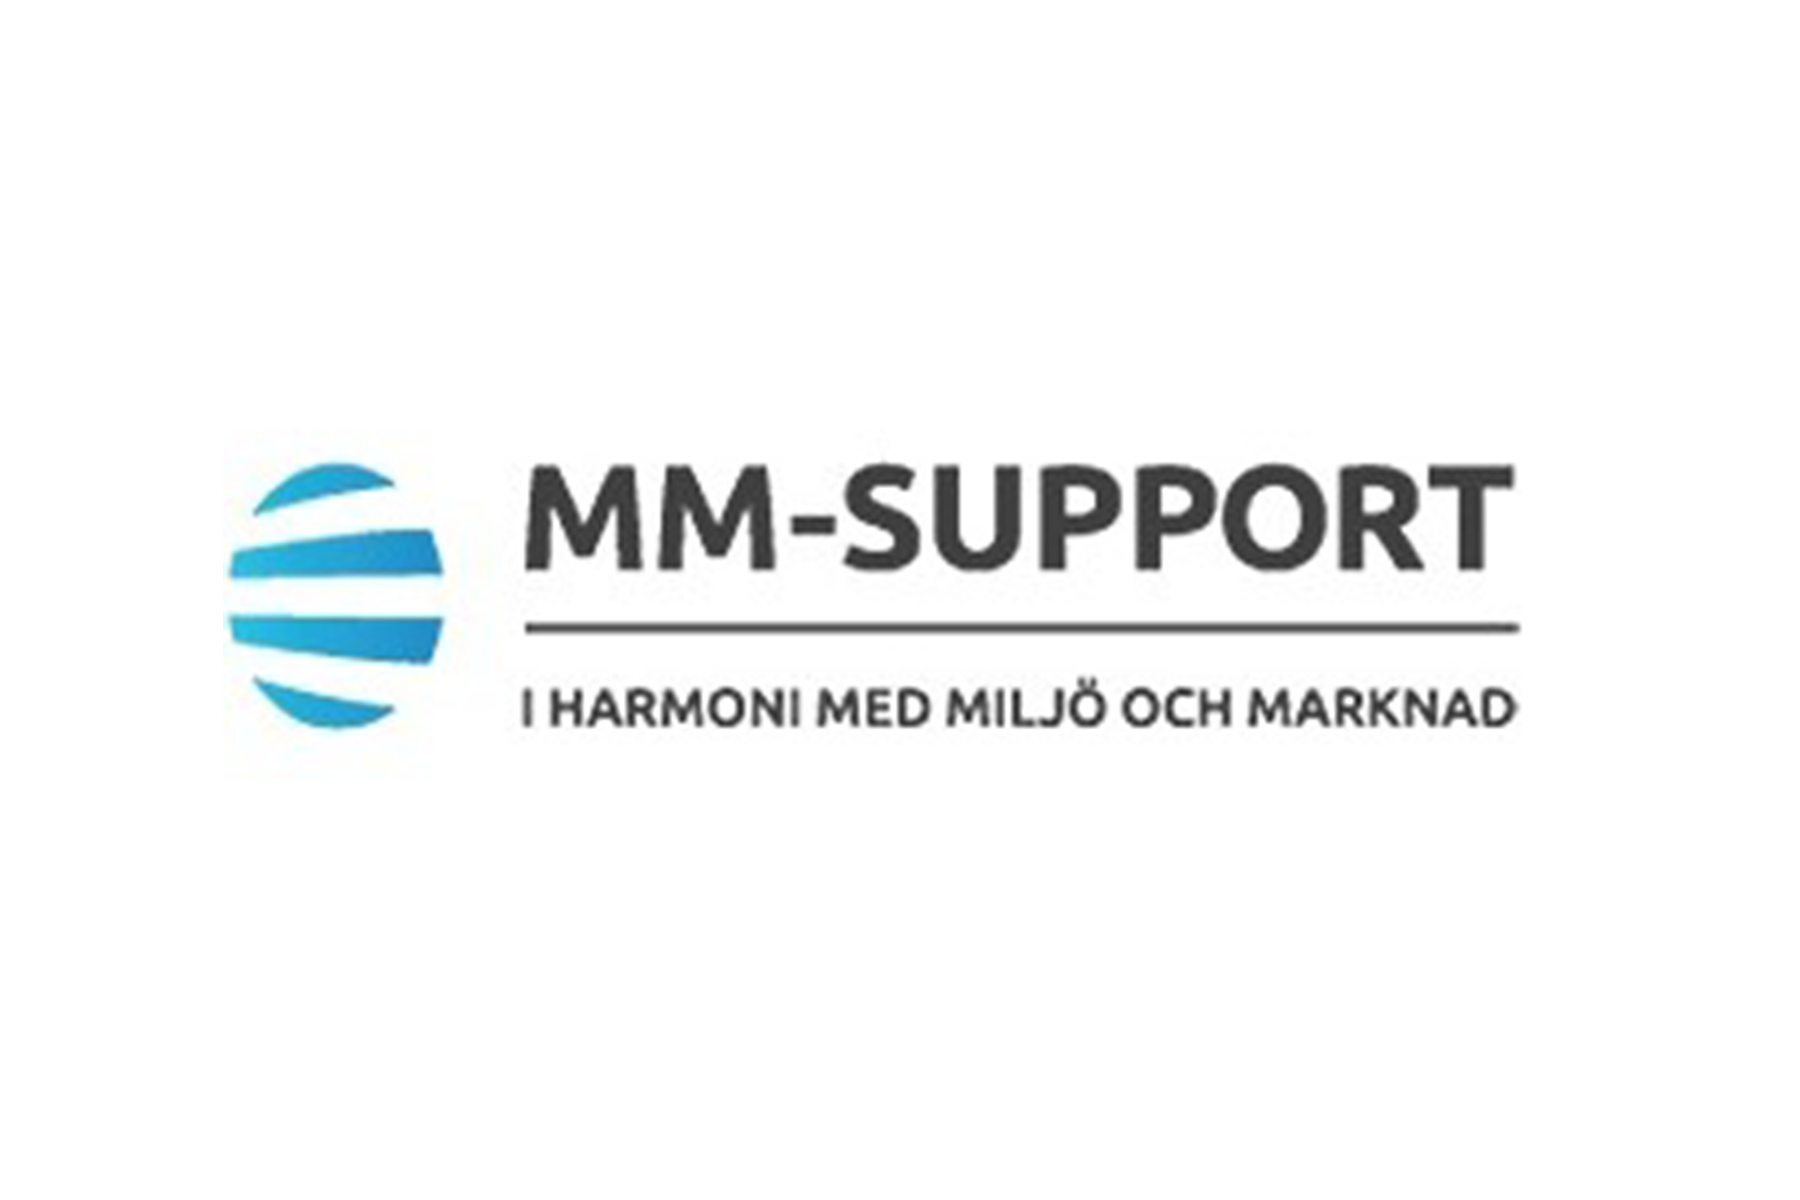 MM-support